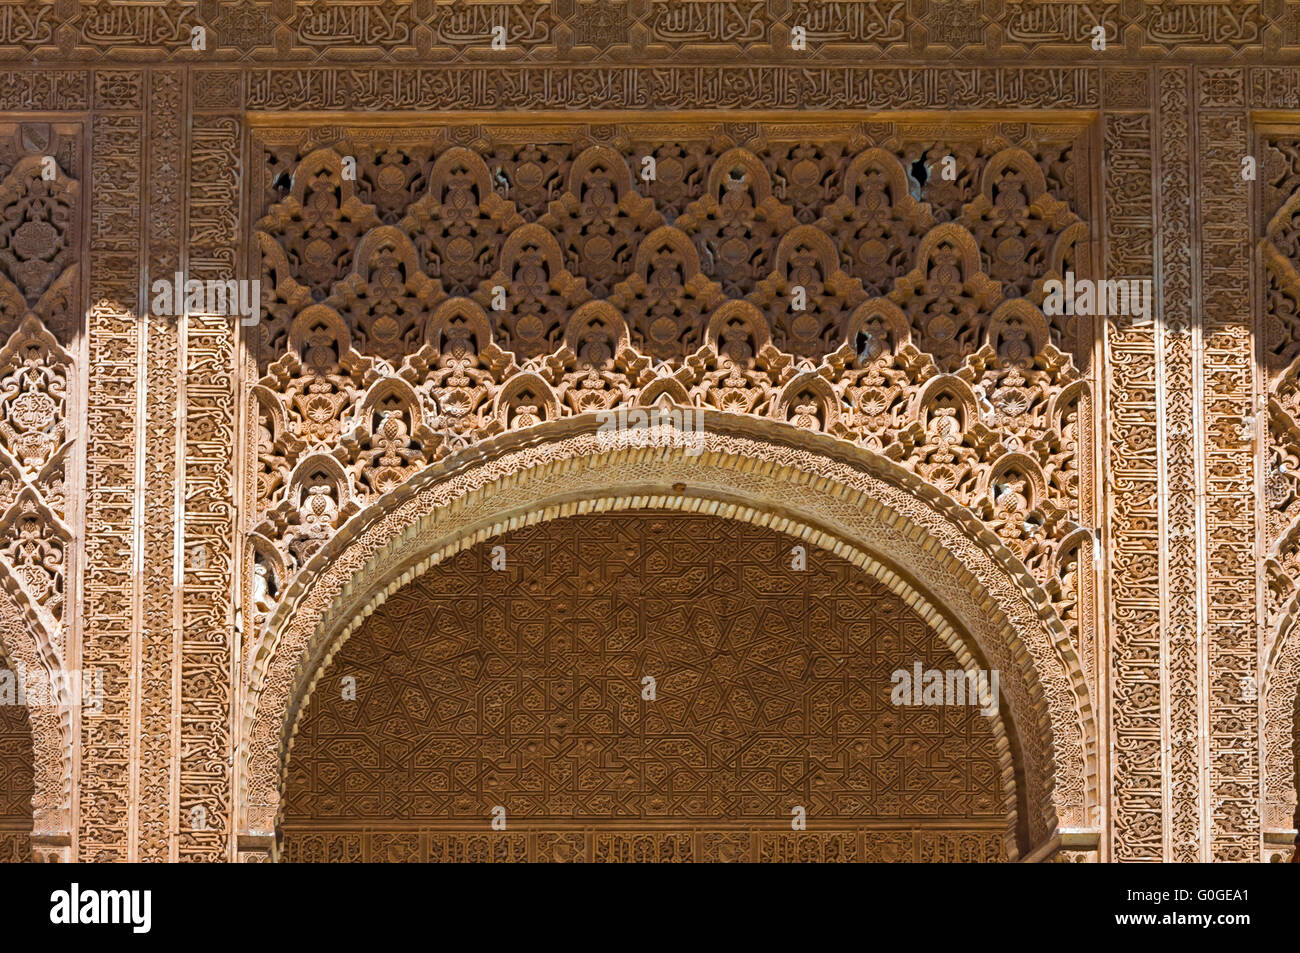 Moresque ornaments from Alhambra Islamic Royal Palace, Granada, Spain - Stock Image